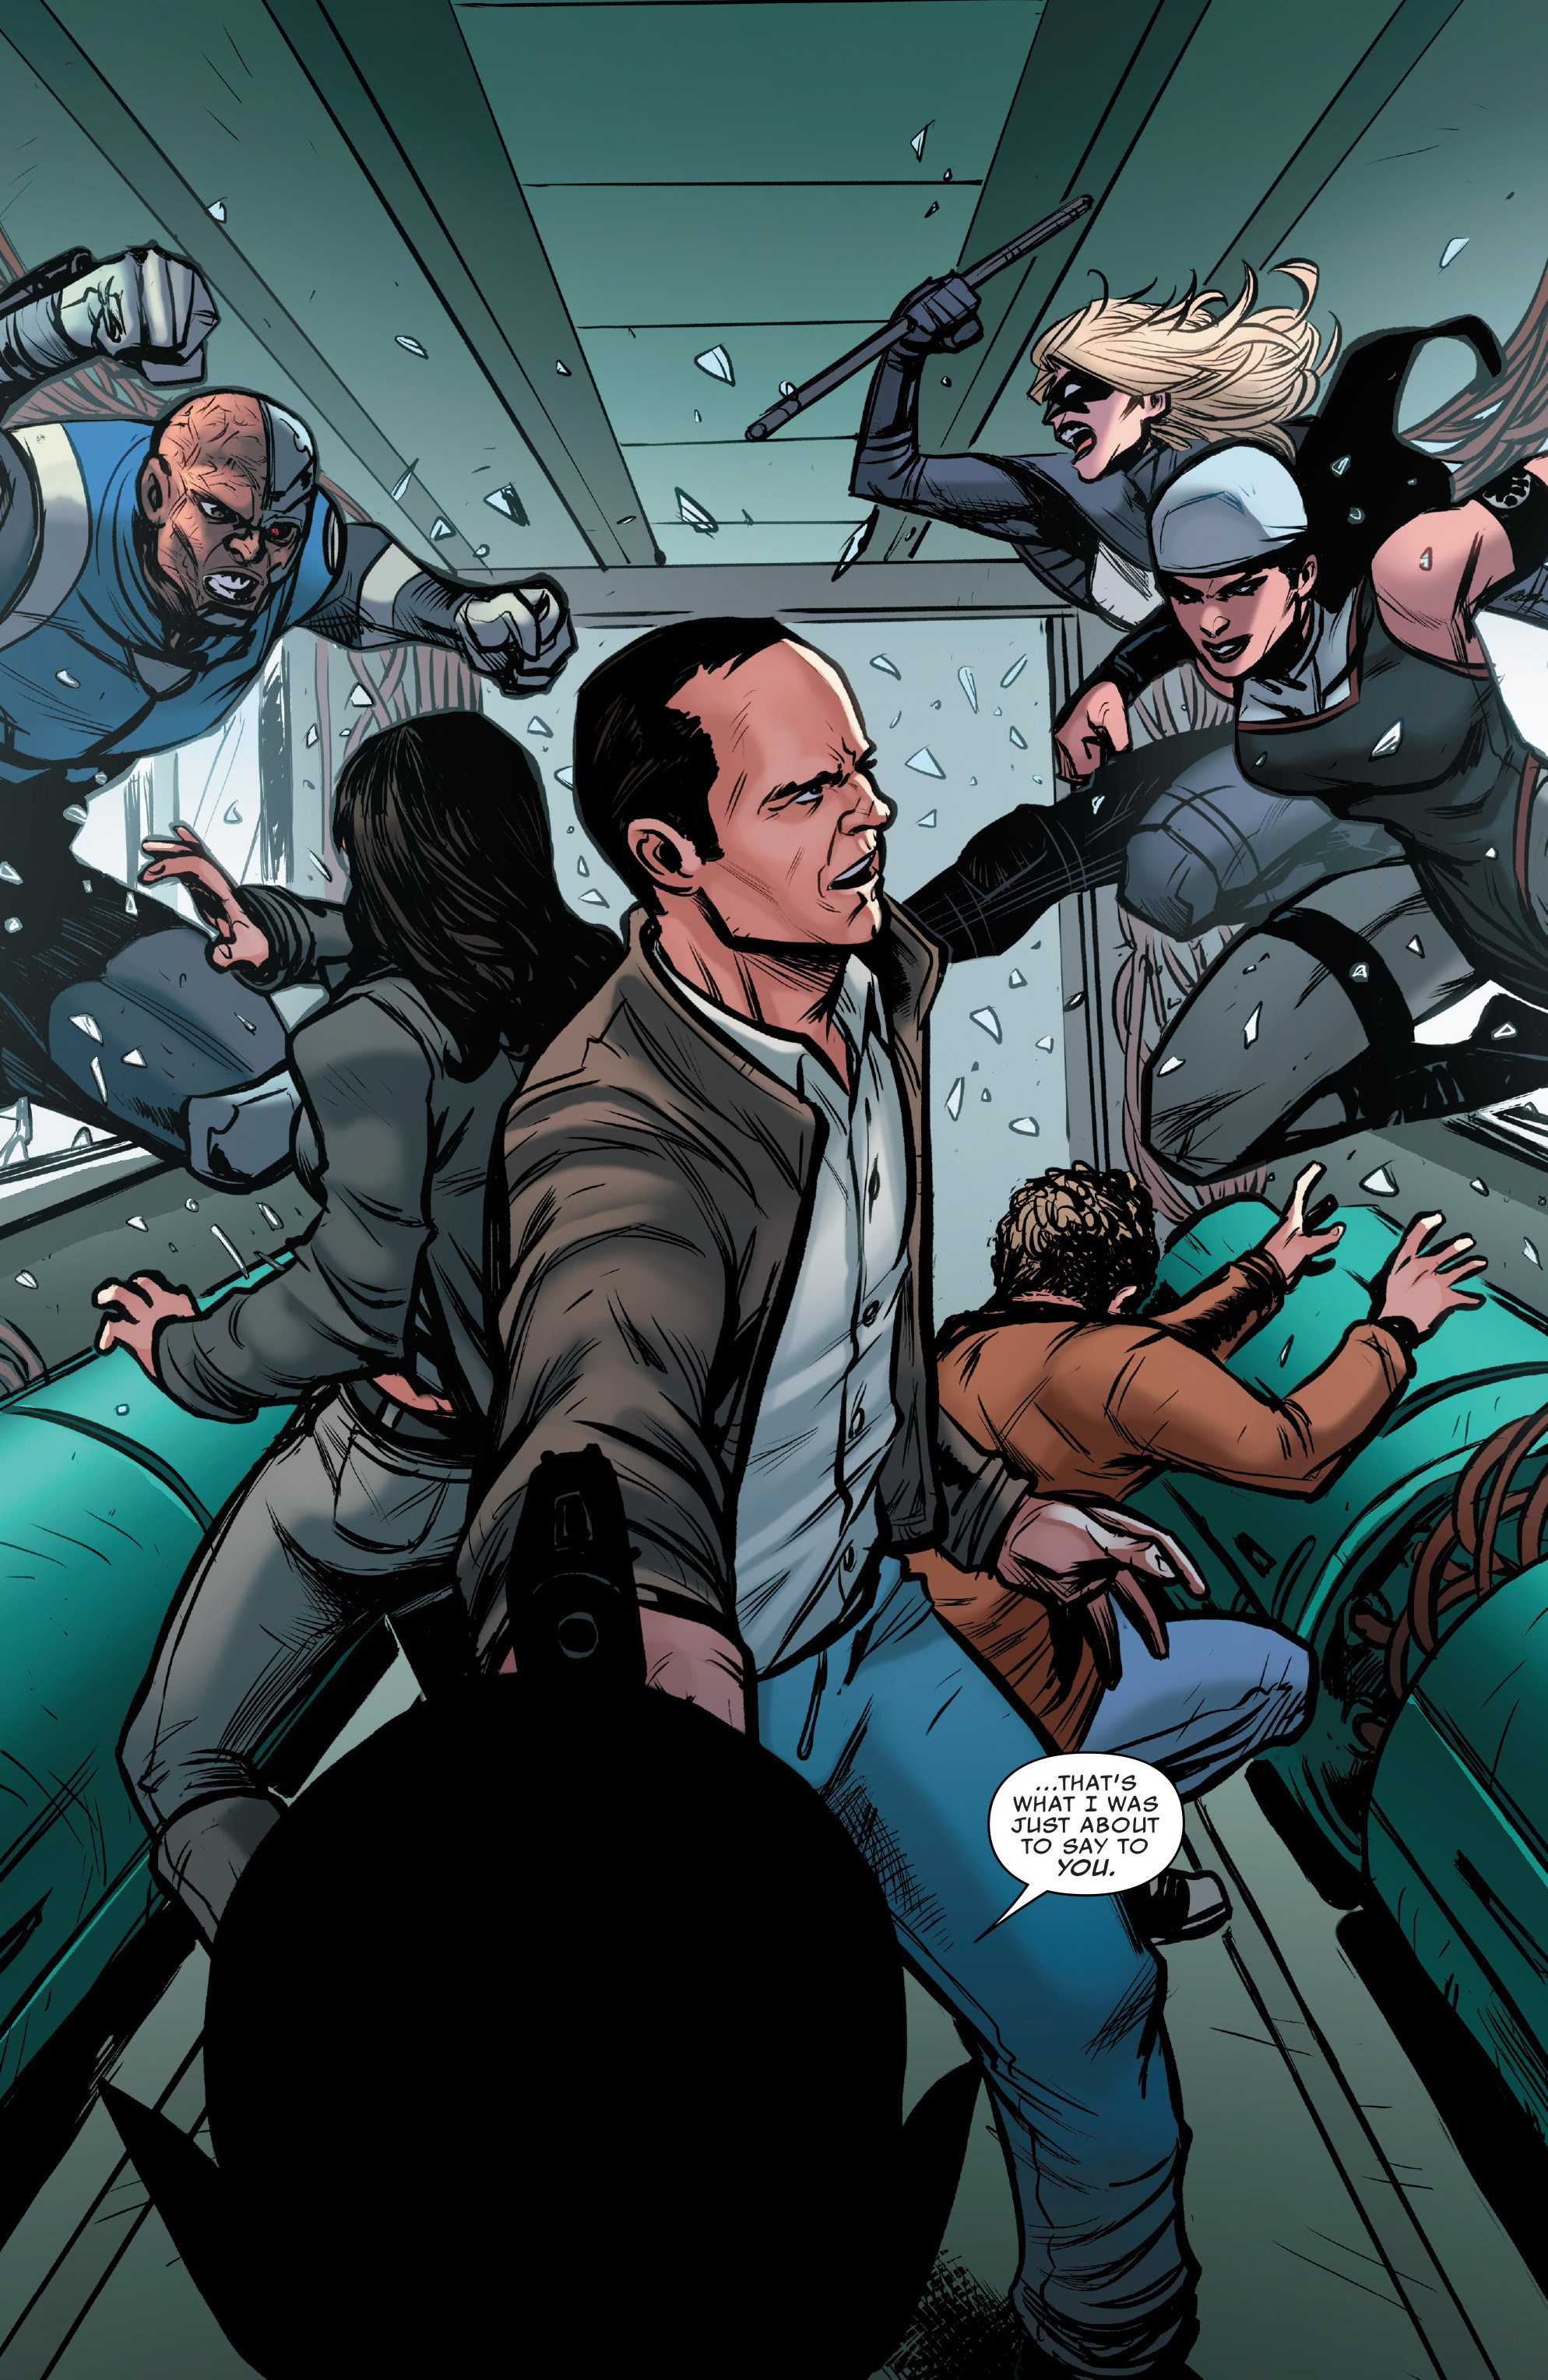 Read online Agents of S.H.I.E.L.D. comic -  Issue #9 - 16